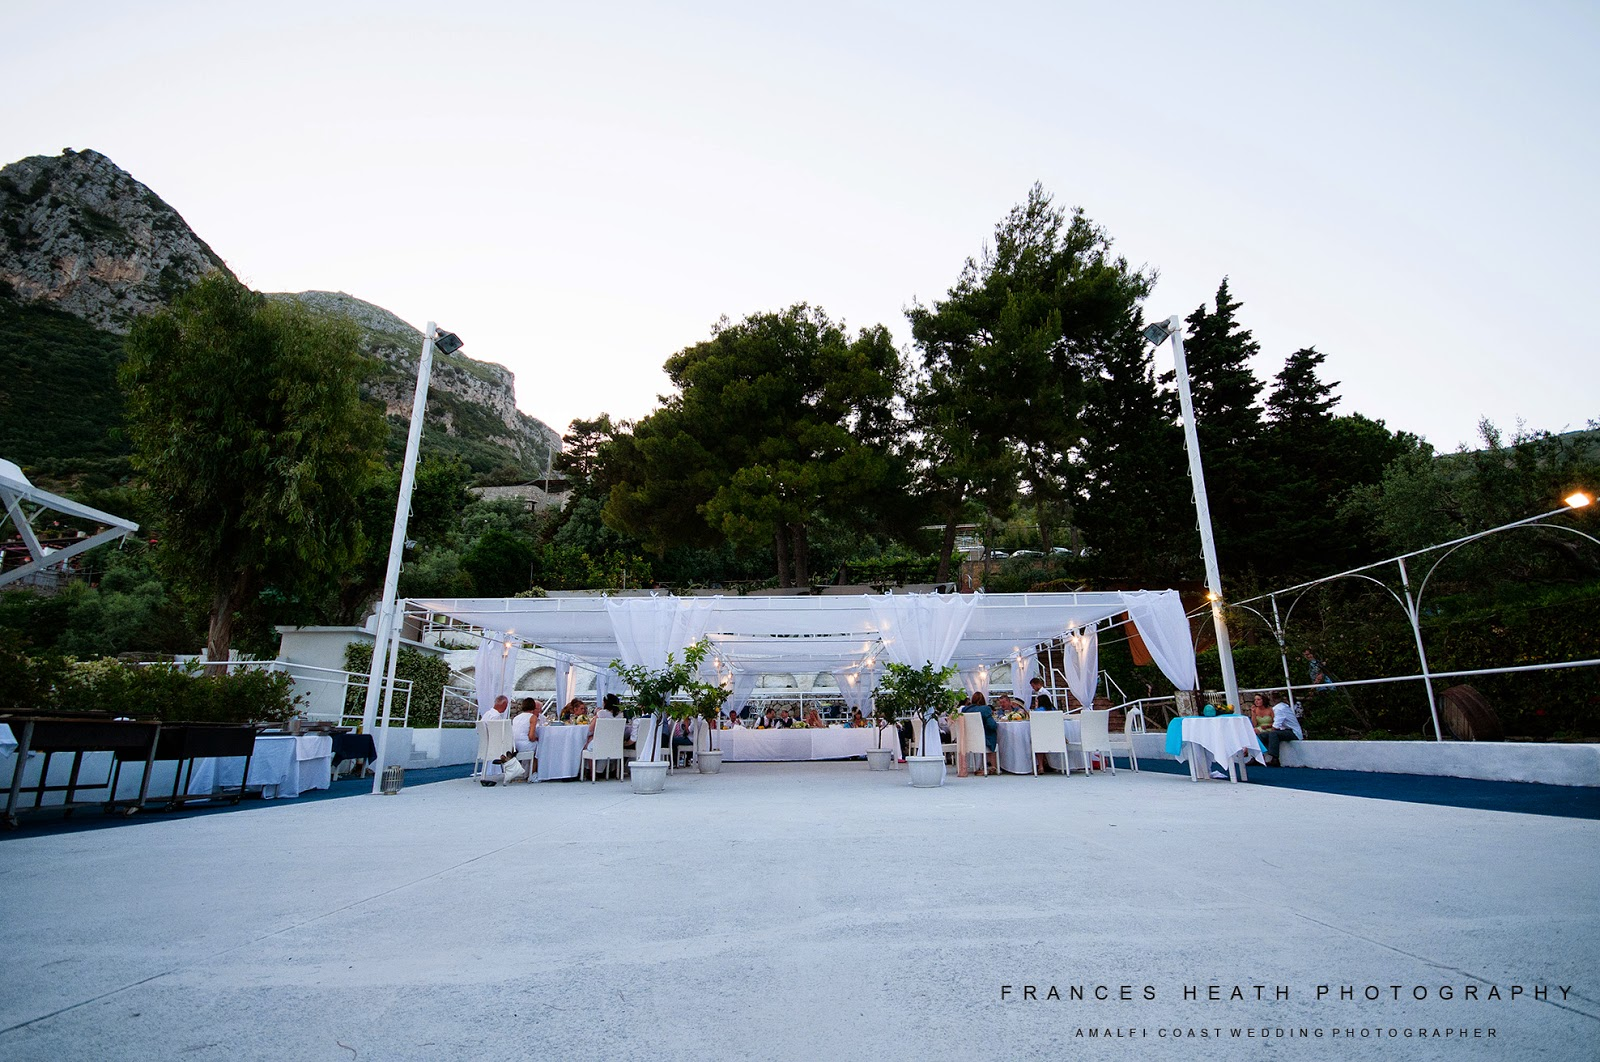 Wedding at the Sassi Beach Club in Nerano